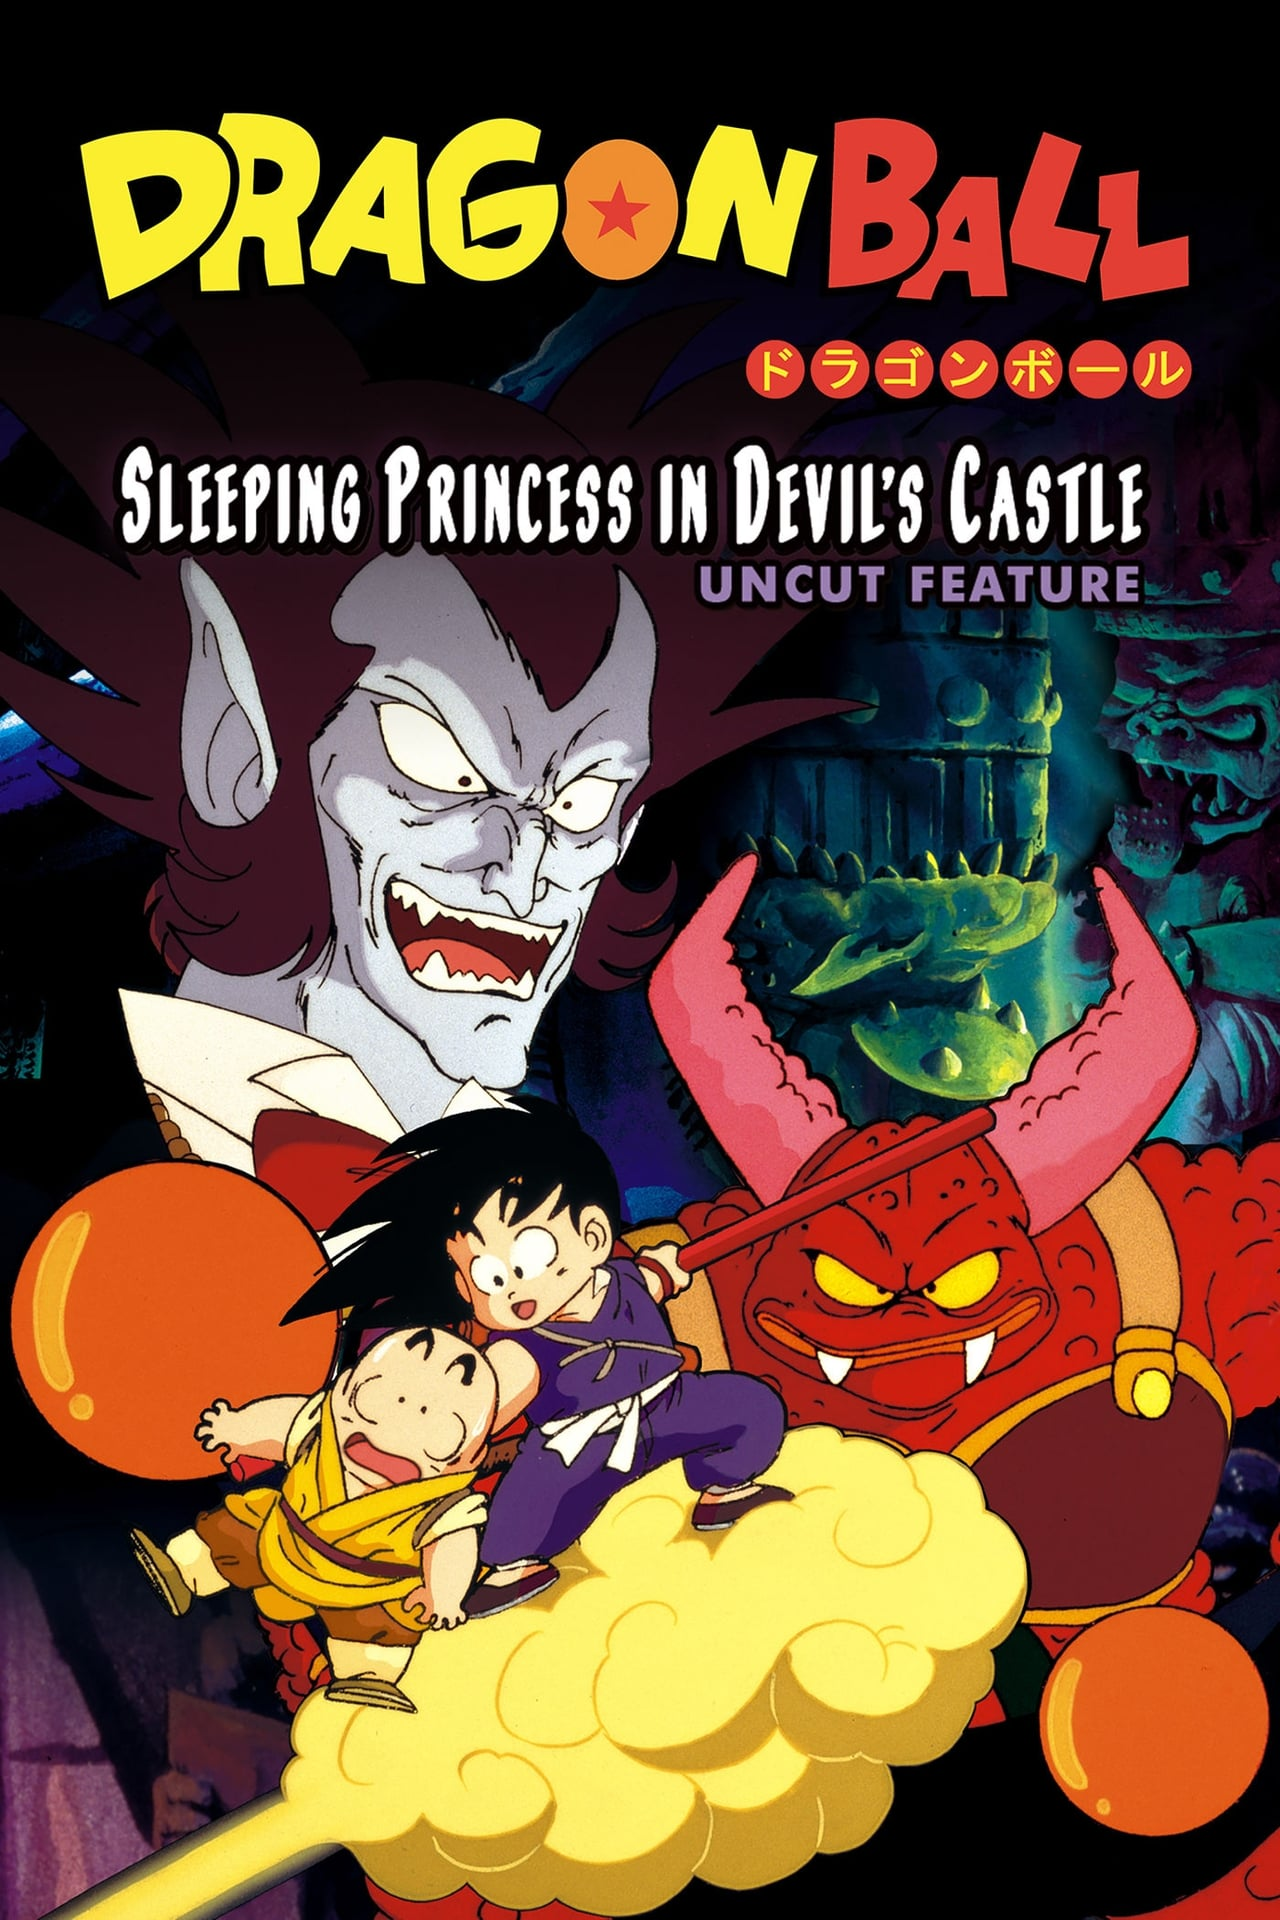 Dragon Ball: Sleeping Princess in Devil's Castle